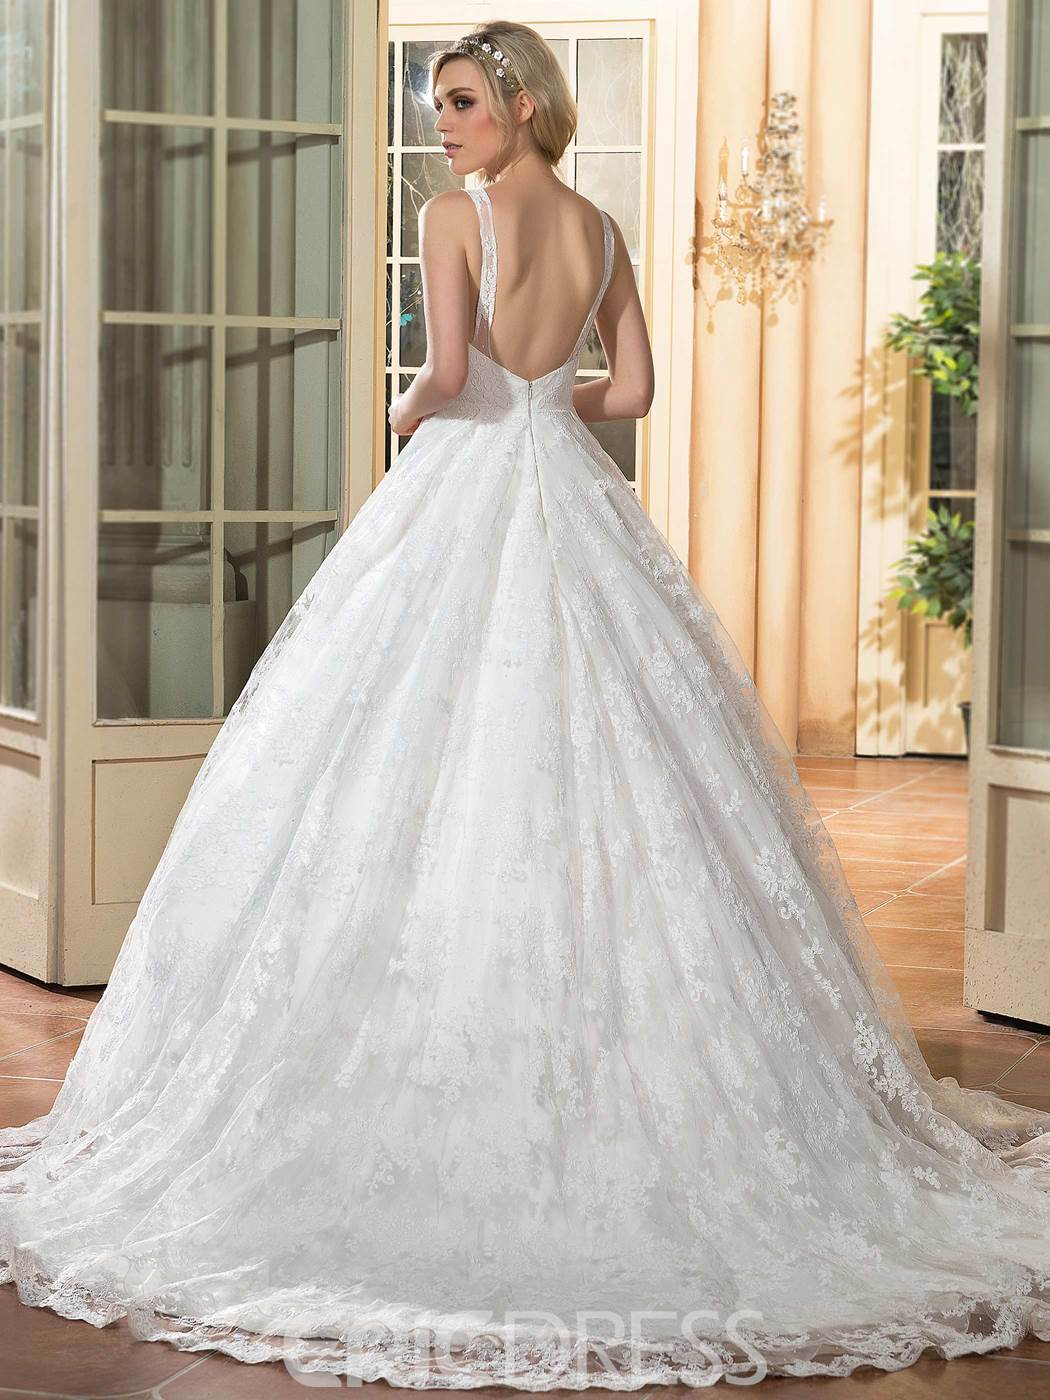 Ericdress Charming Backless Ball Gown Wedding Dress